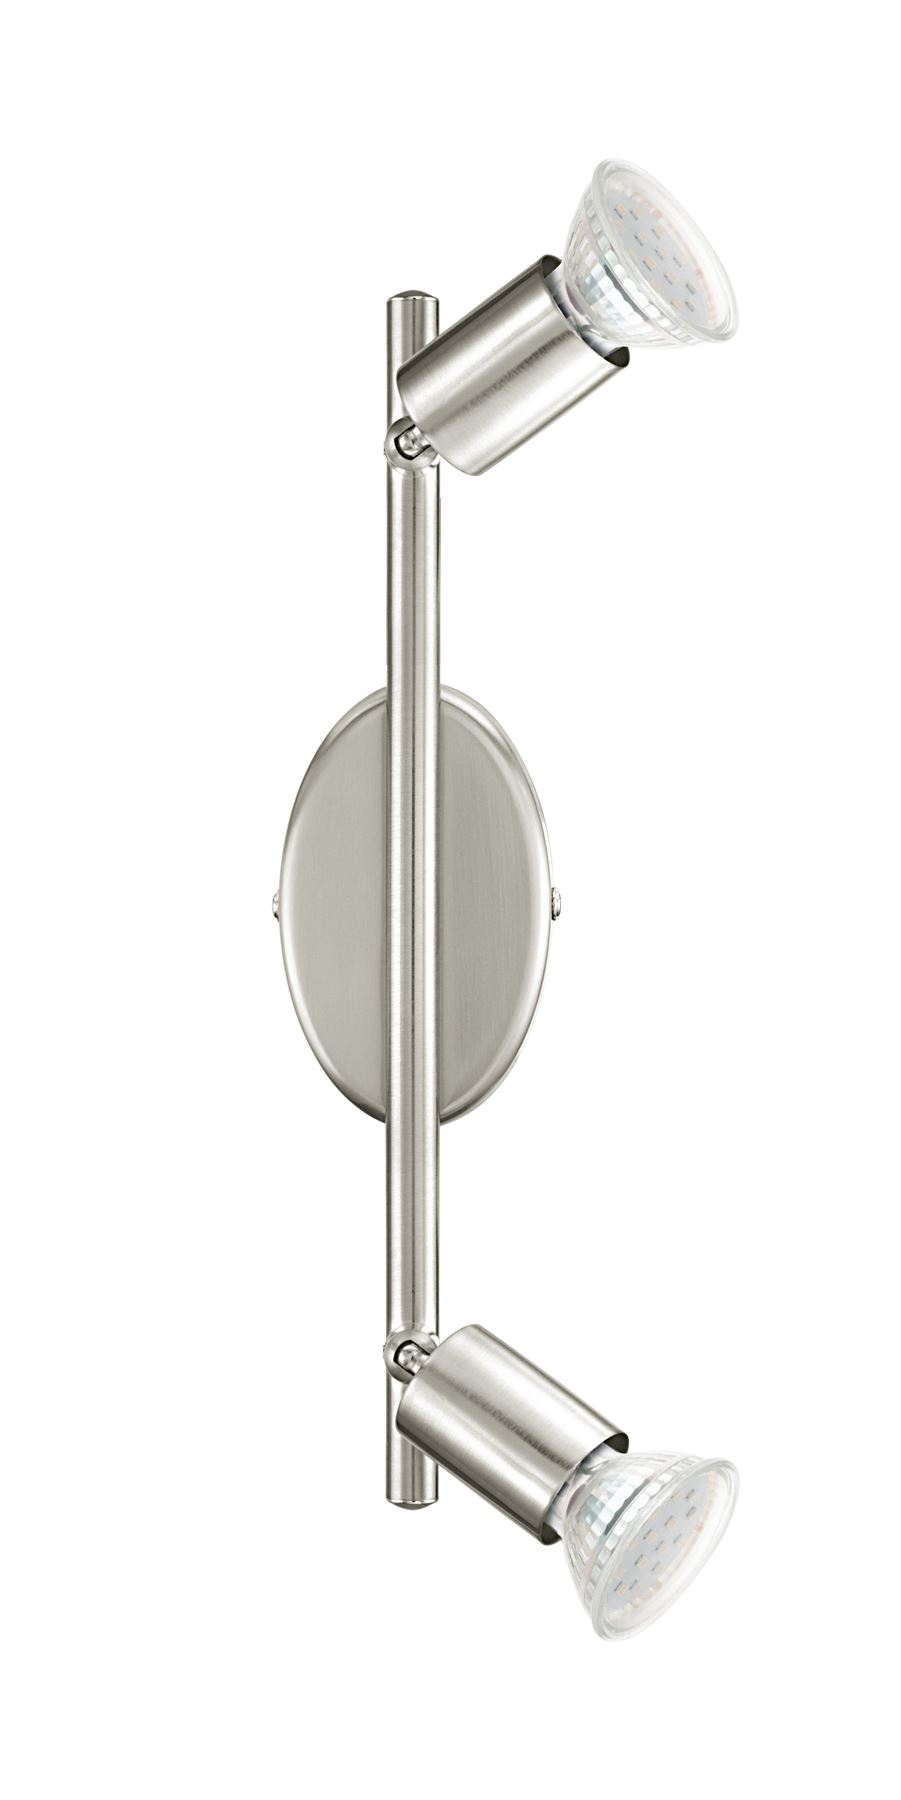 Buzz LED Stylish 2 Light Satin Nickel Ceiling Spot Light